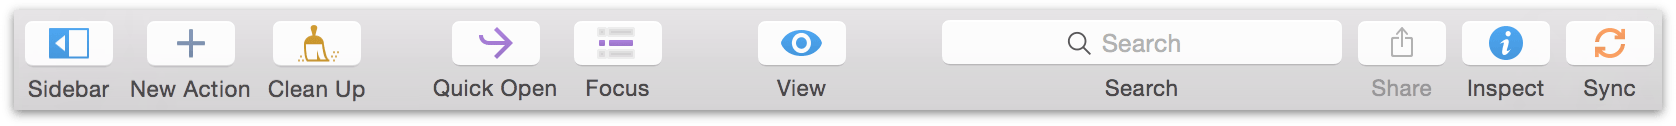 The default toolbar in OmniFocus 2.